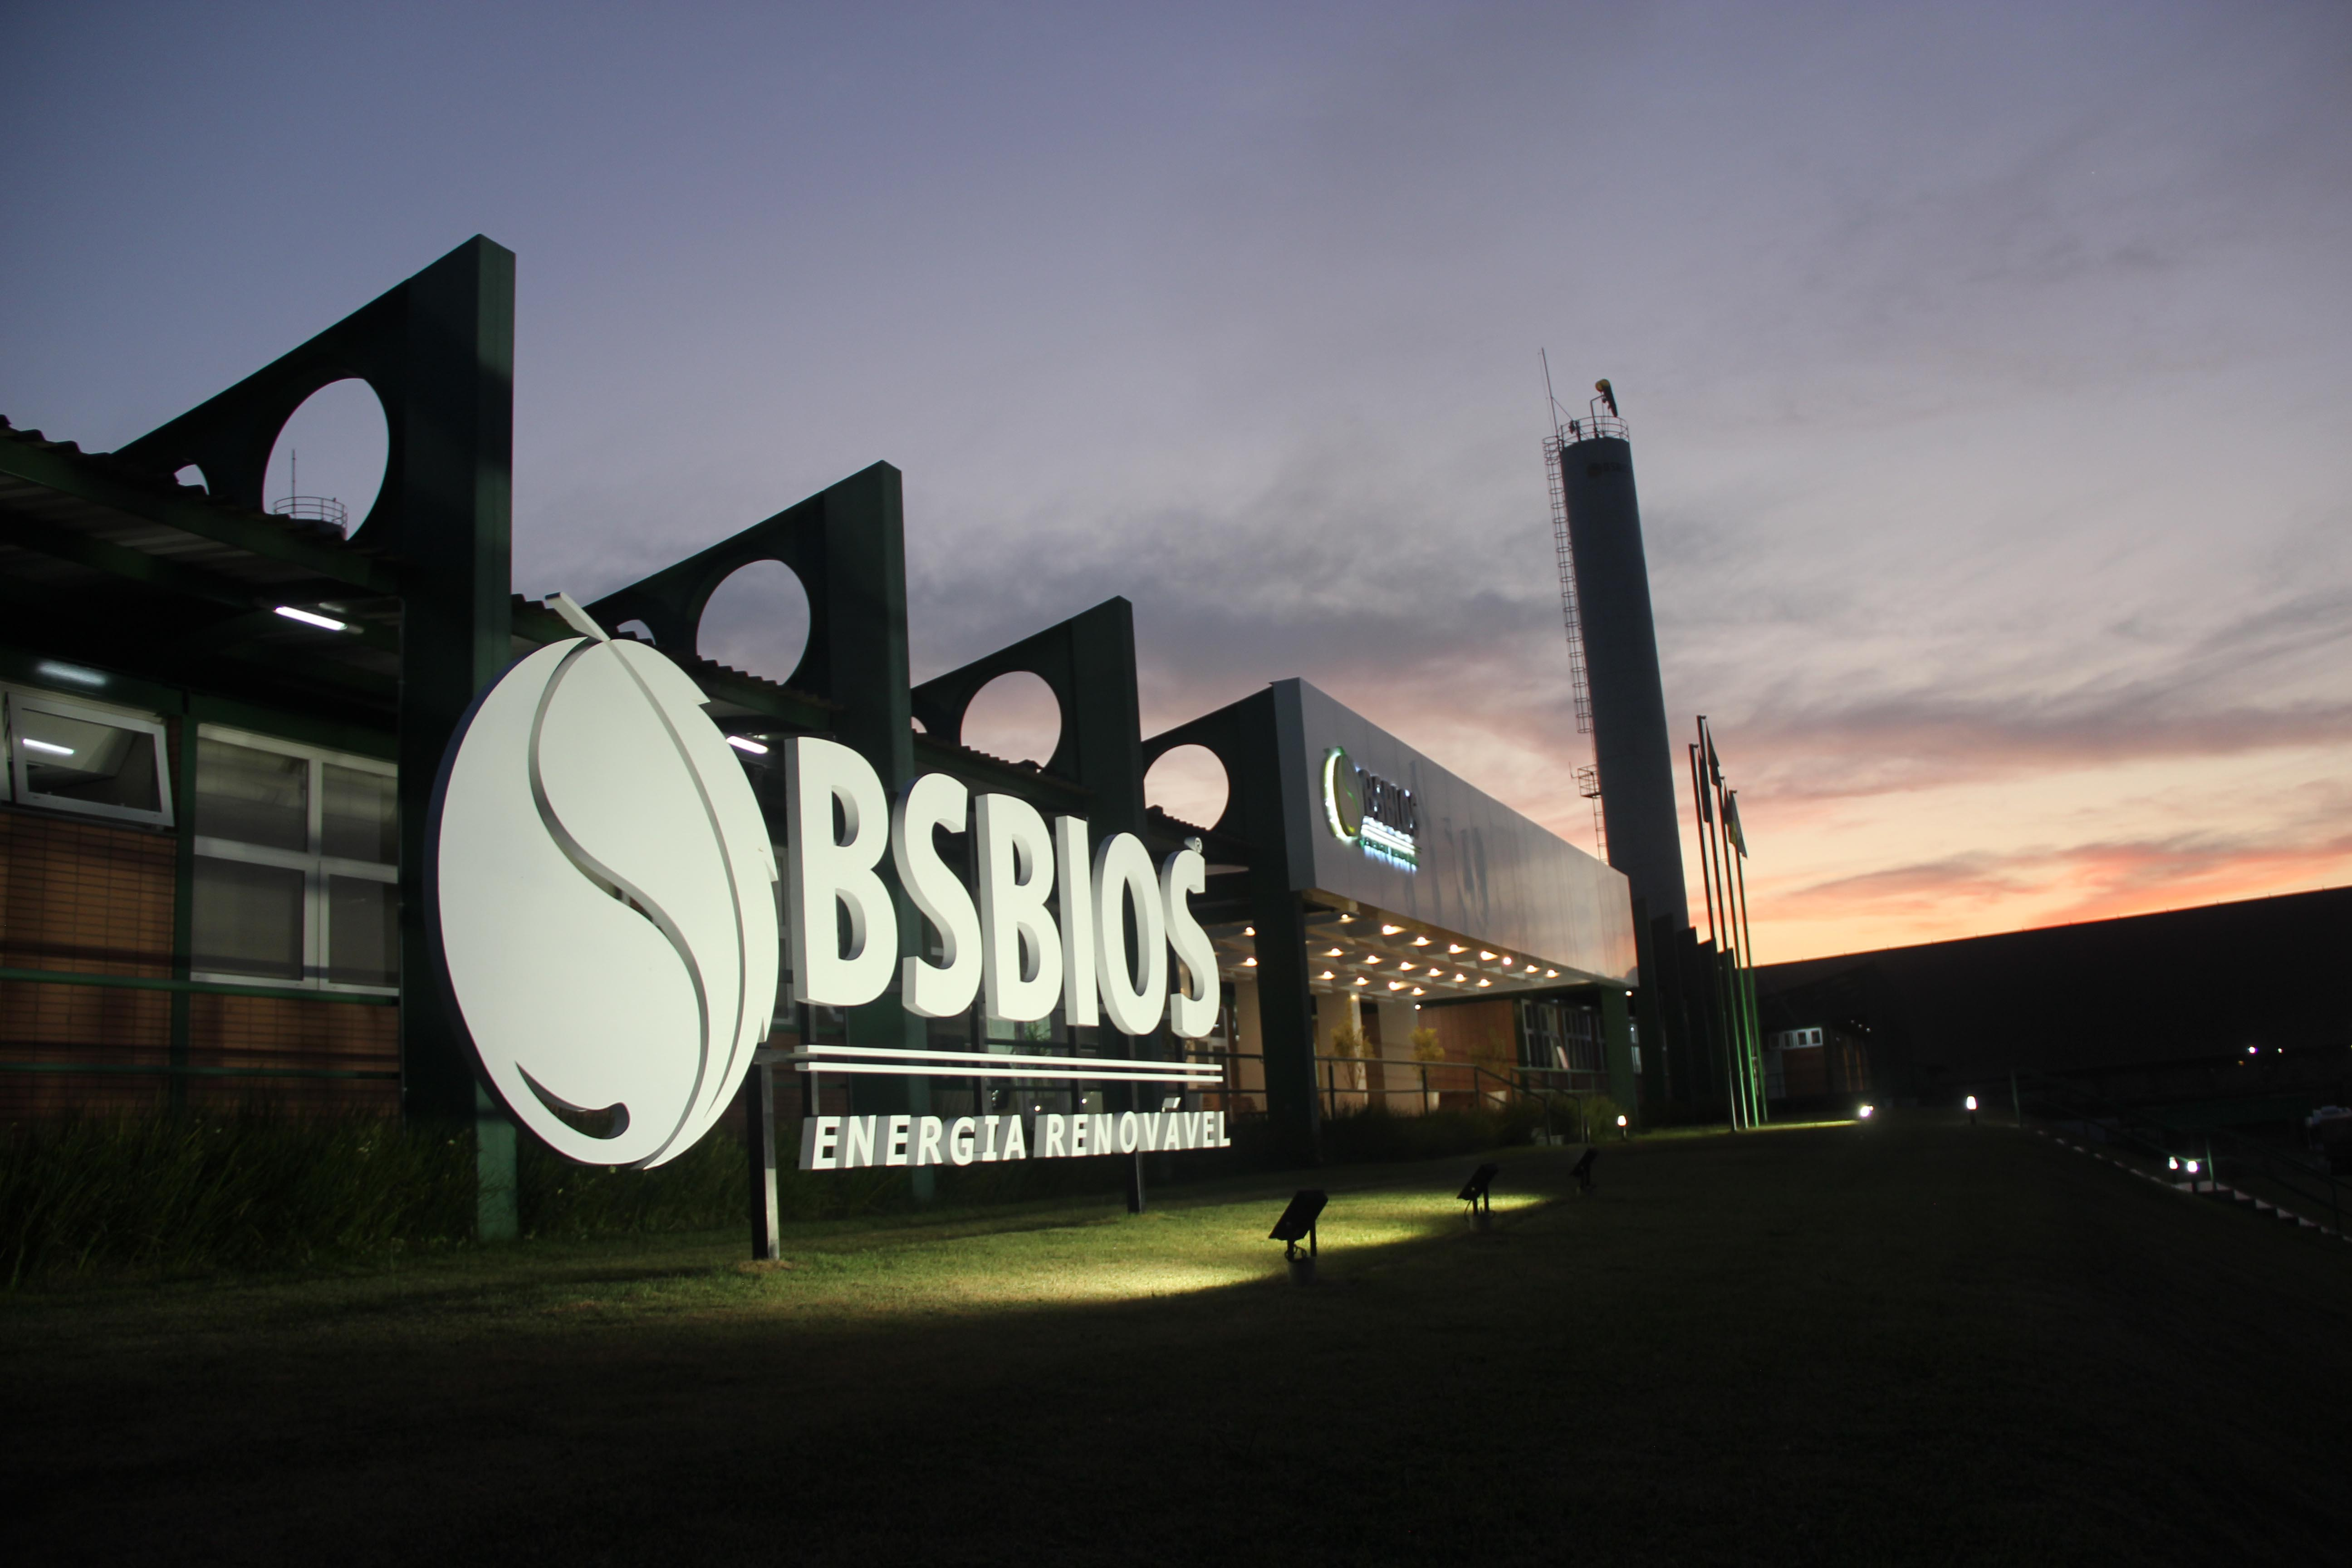 BSBIOS defines base in Switzerland as a platform to develop business in Europe